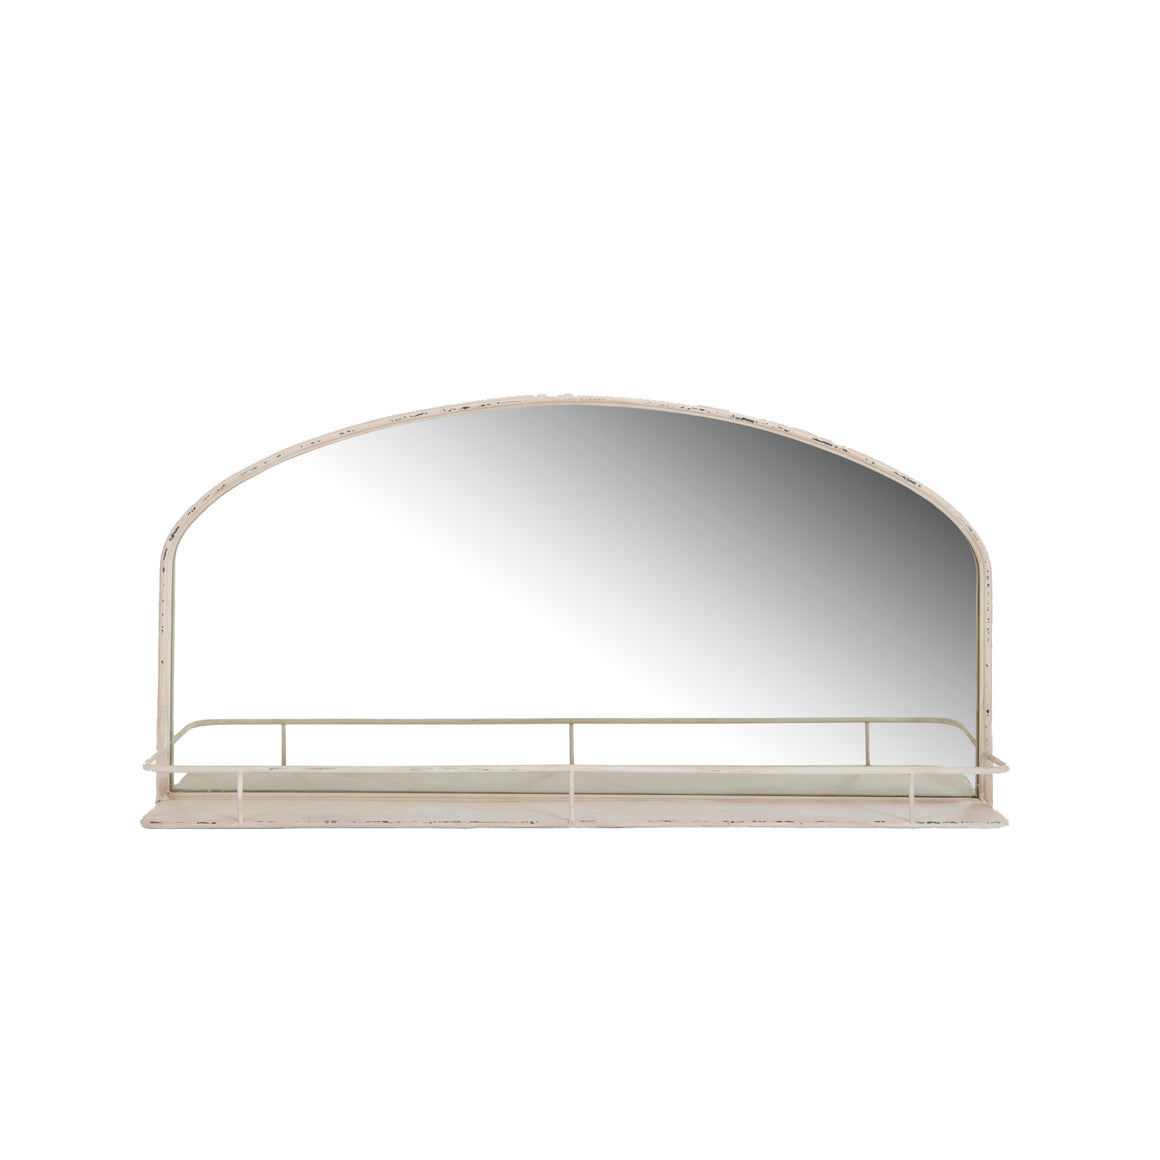 French Style Arched Wall Mirror with shelf